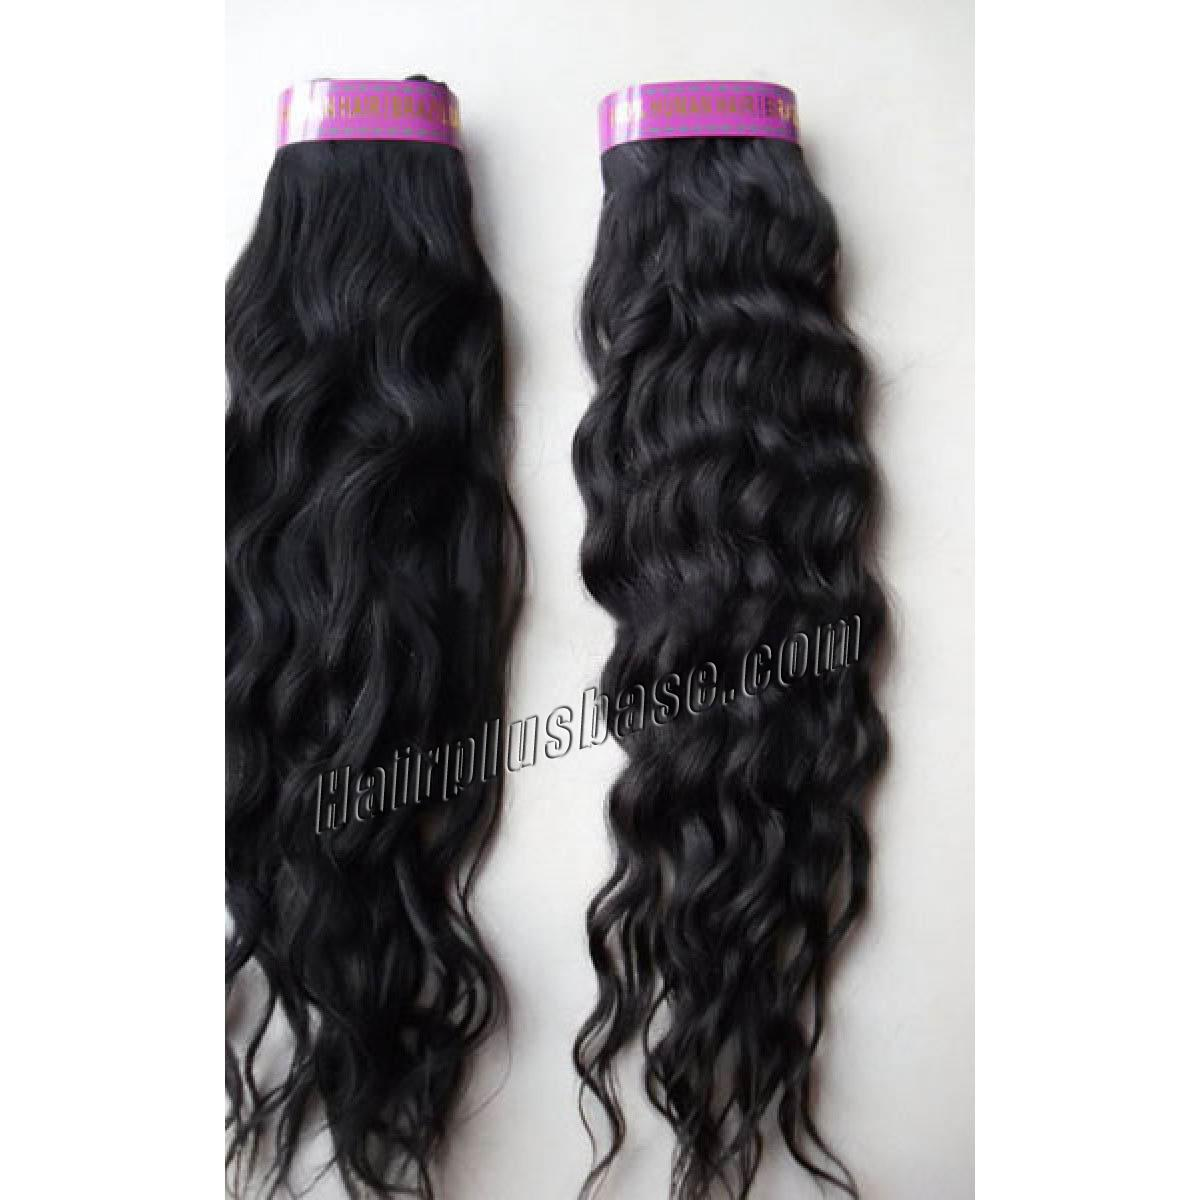 14 Inch #1 Jet Black Curly Brazilian Virgin Hair Wefts no 1